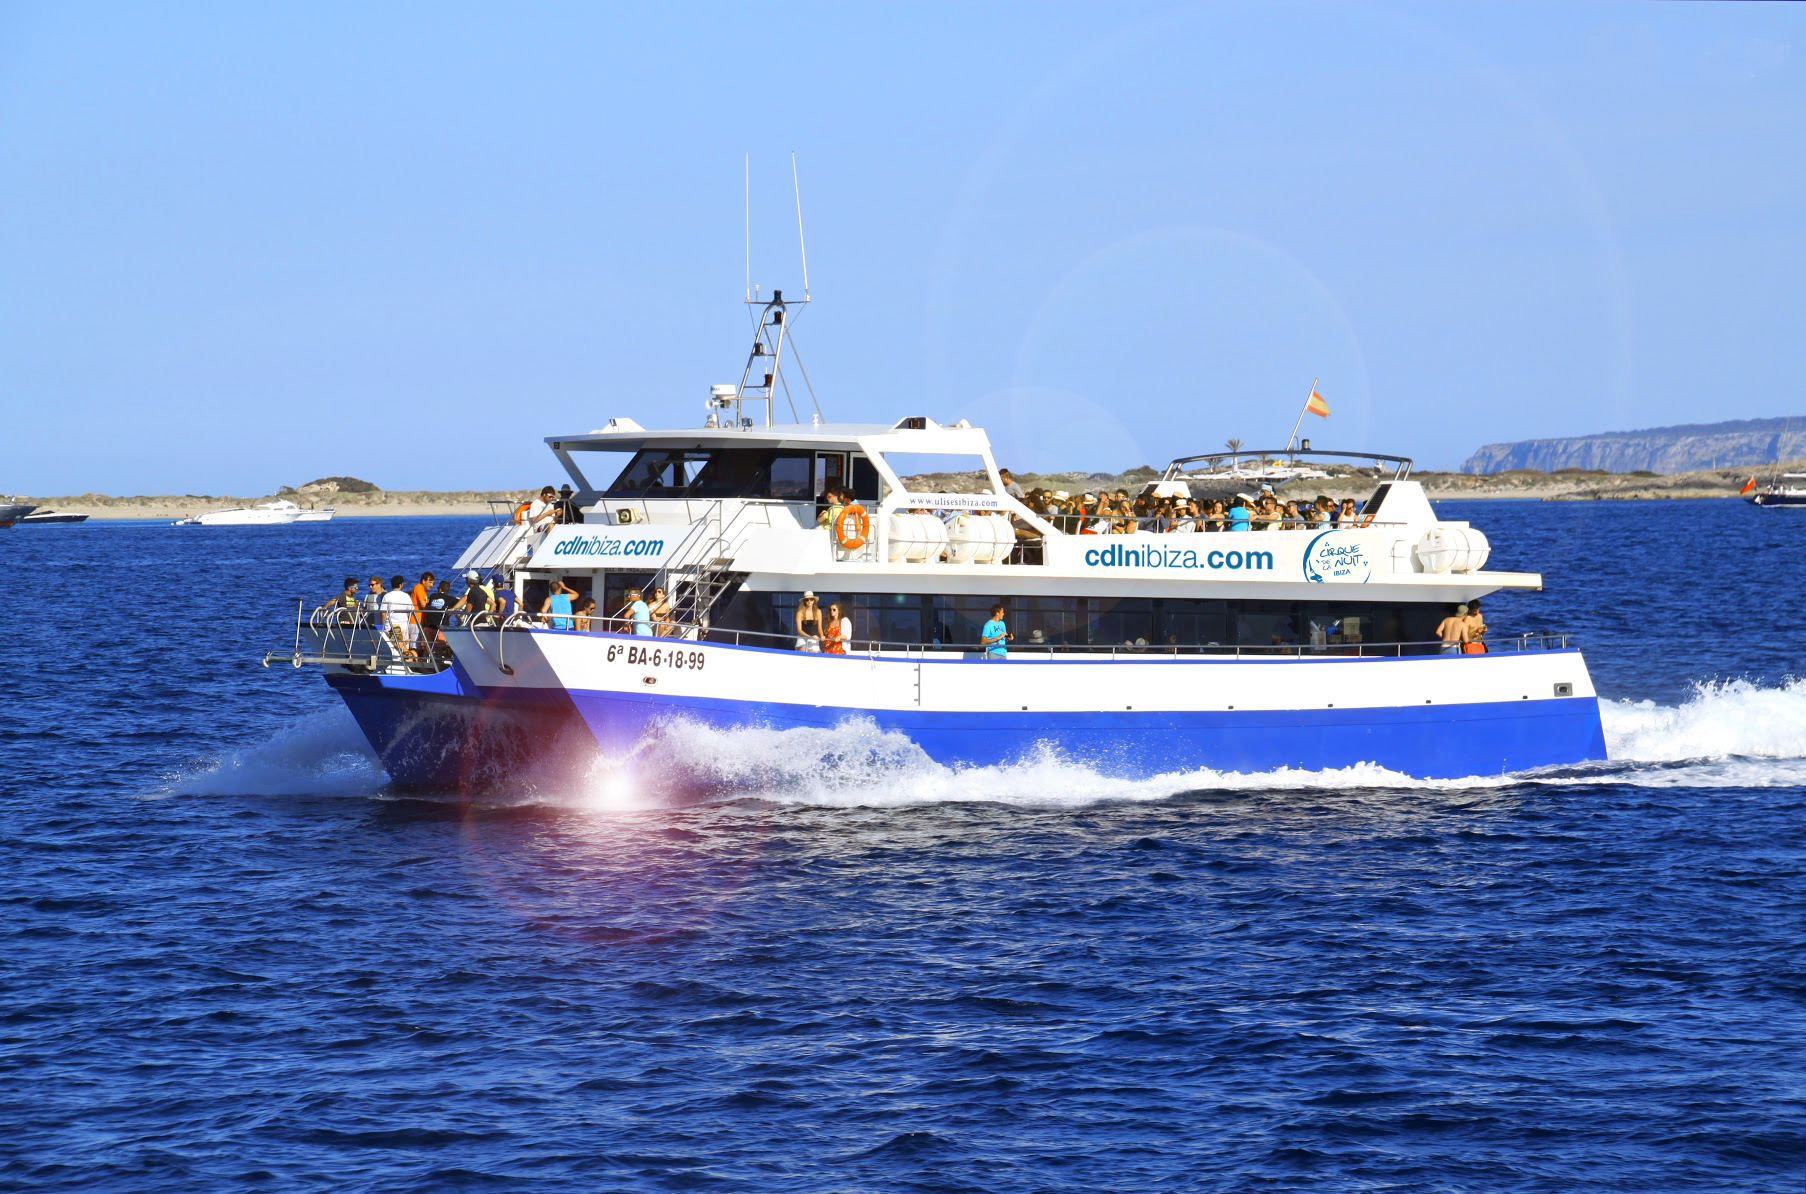 Boat Parties Ibiza Info Dj Listings And Tickets